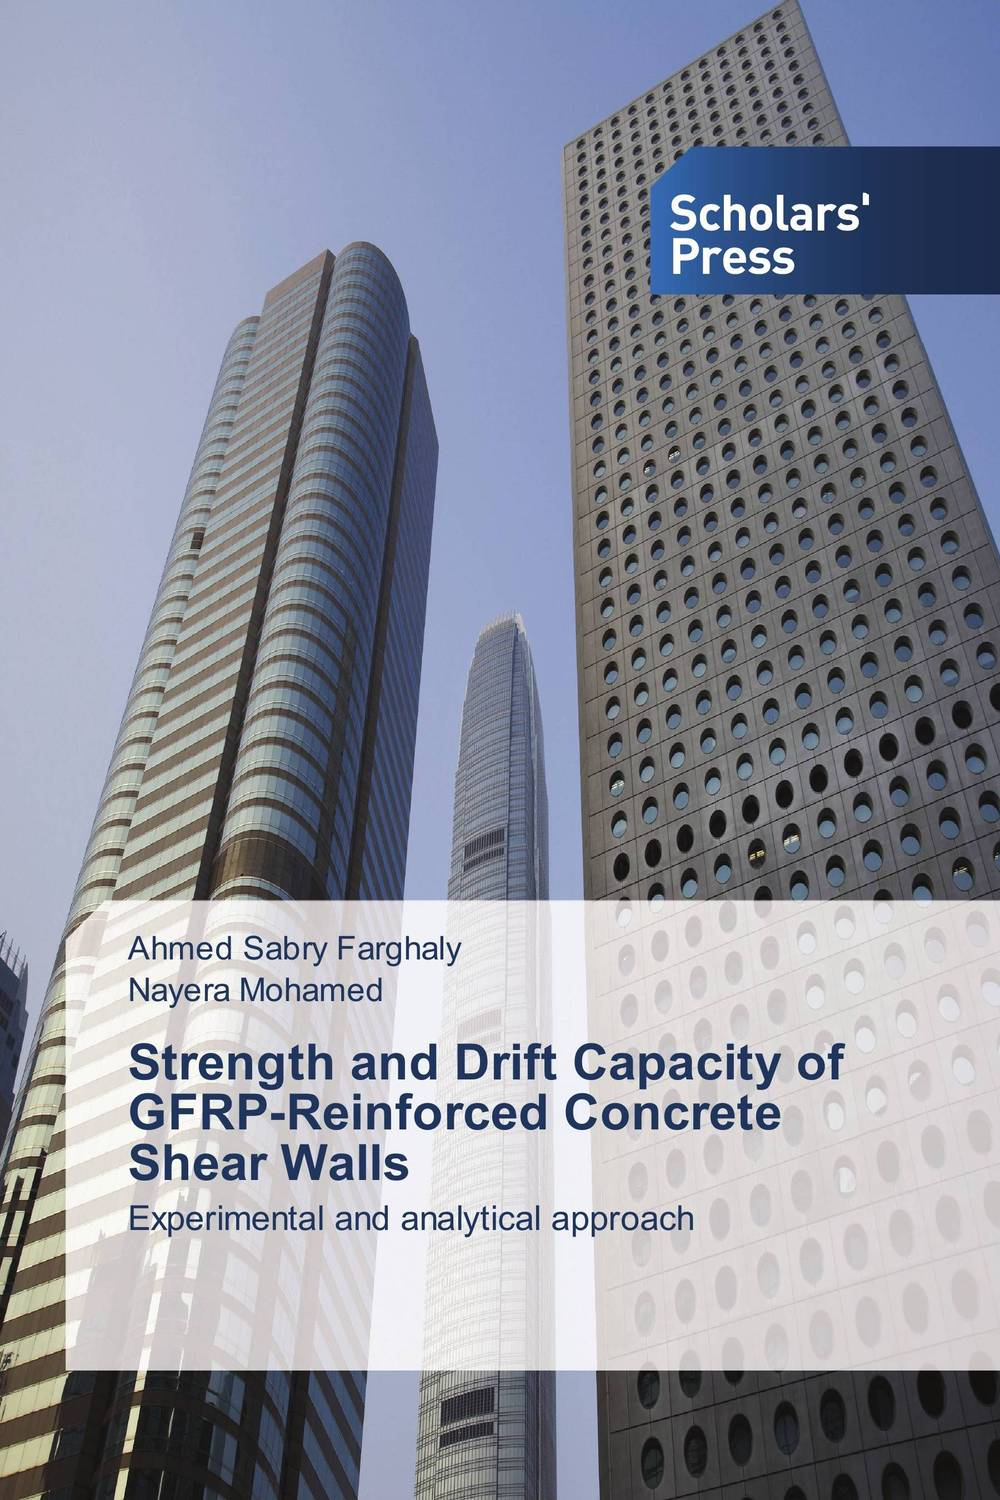 Strength and Drift Capacity of GFRP-Reinforced Concrete Shear Walls innovative design philosophy for reinforced concrete structures